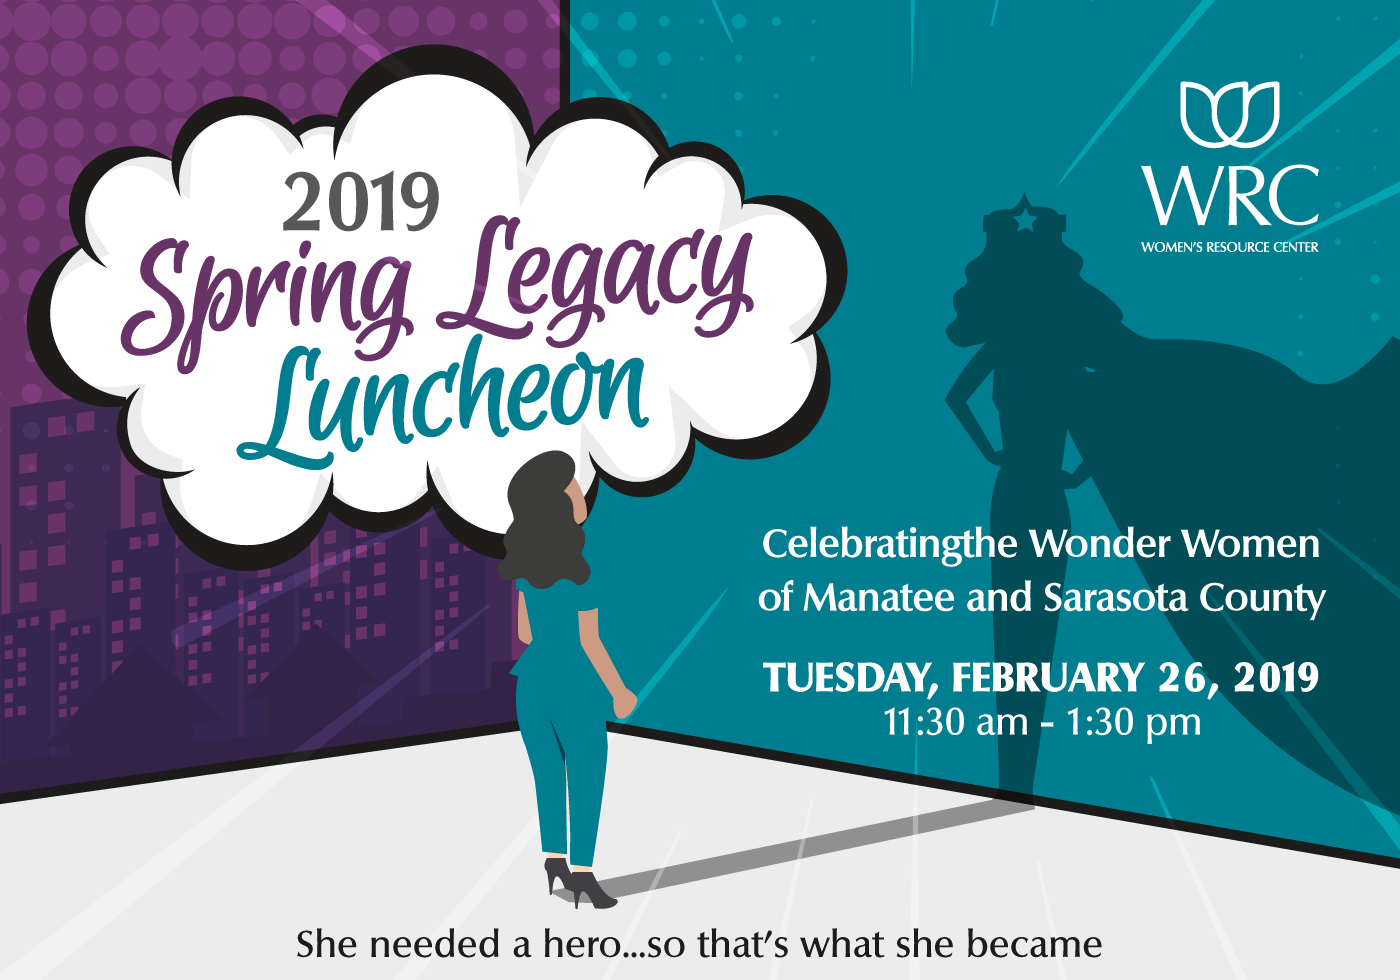 2019 Spring Legacy Luncheon | Women's Resource Center